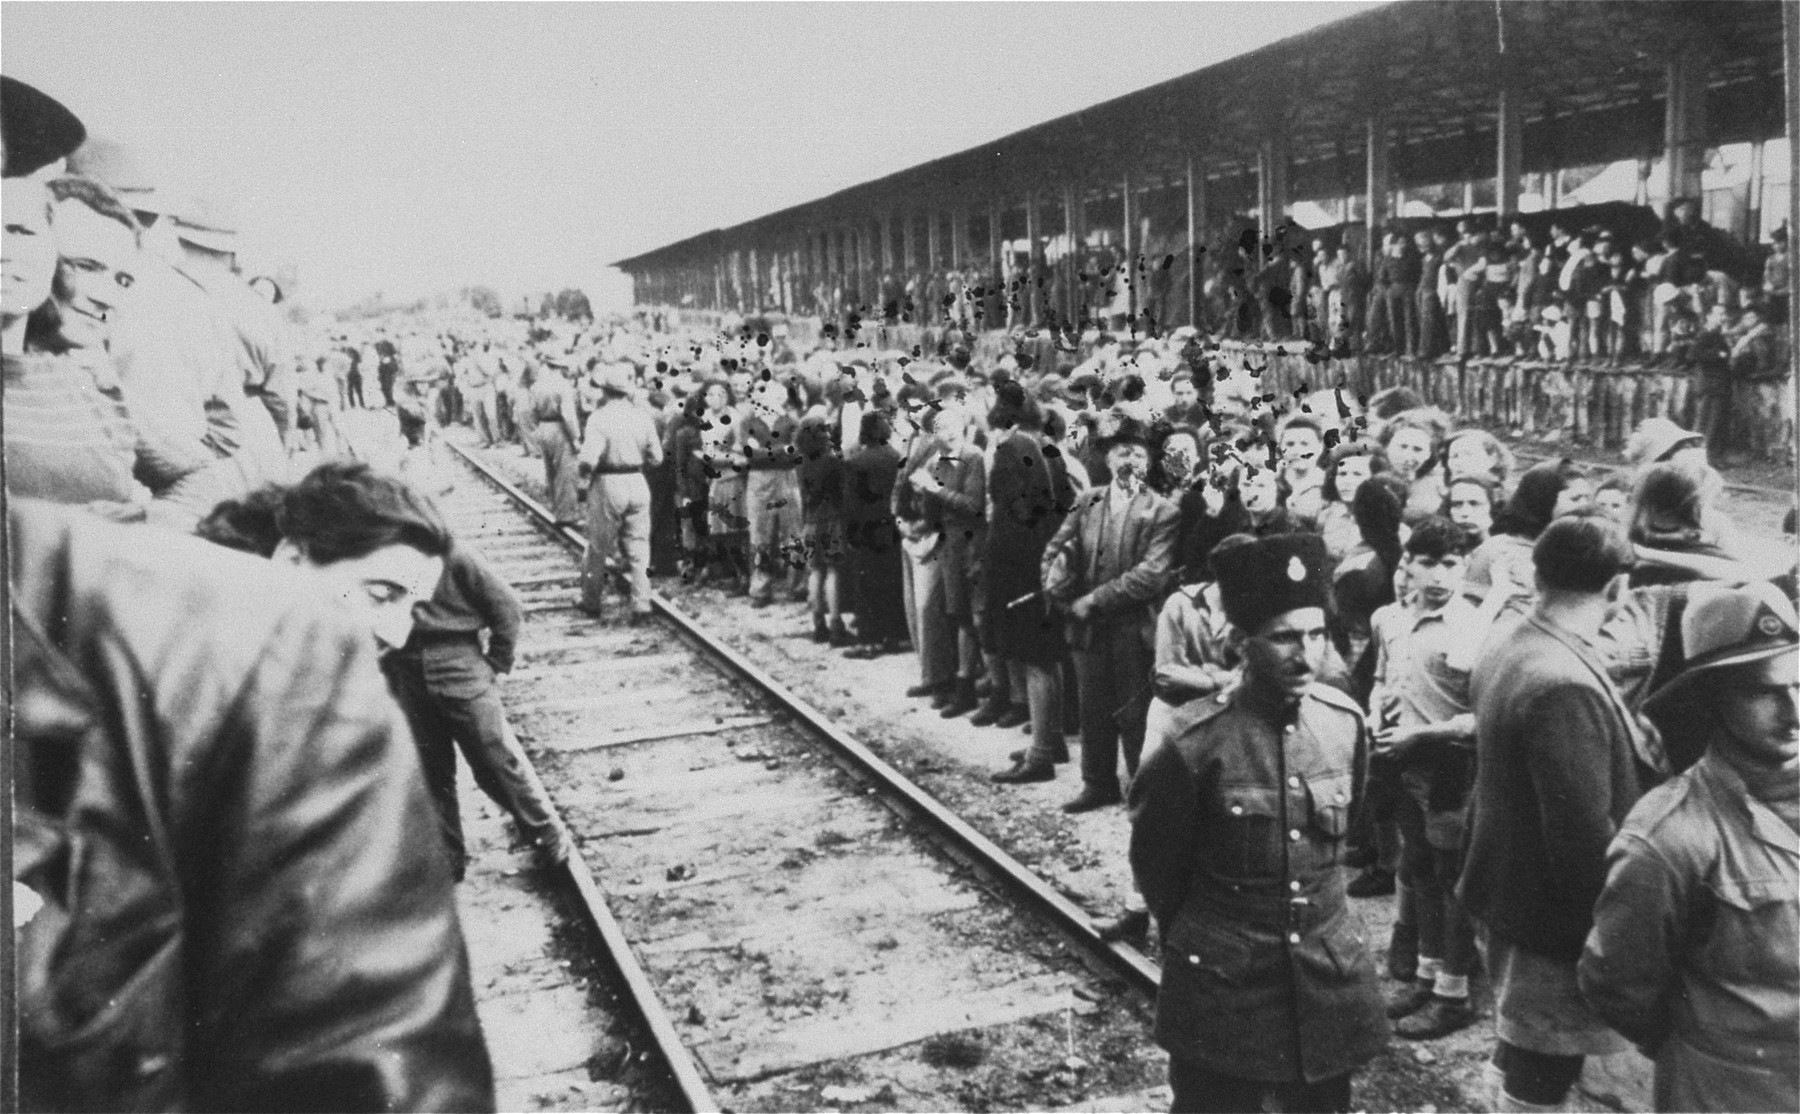 Members of the Yishuv (Jewish community in Palestine) await the arrival of the Teheran children at the train station in Rehovot.